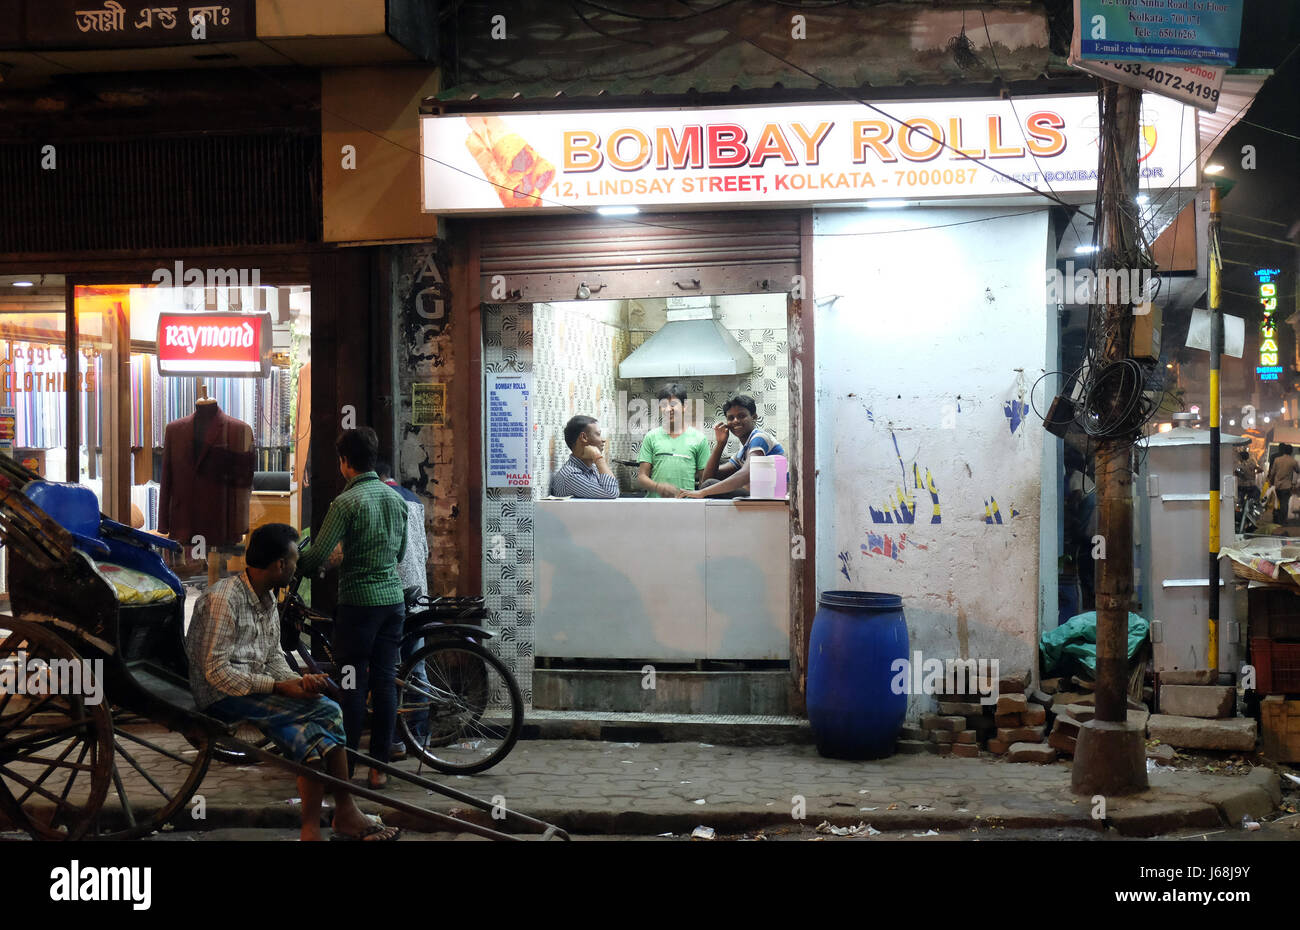 Street fast food shop where they prepare Bombay Rolls in Kolkata on February 09, 2016. - Stock Image